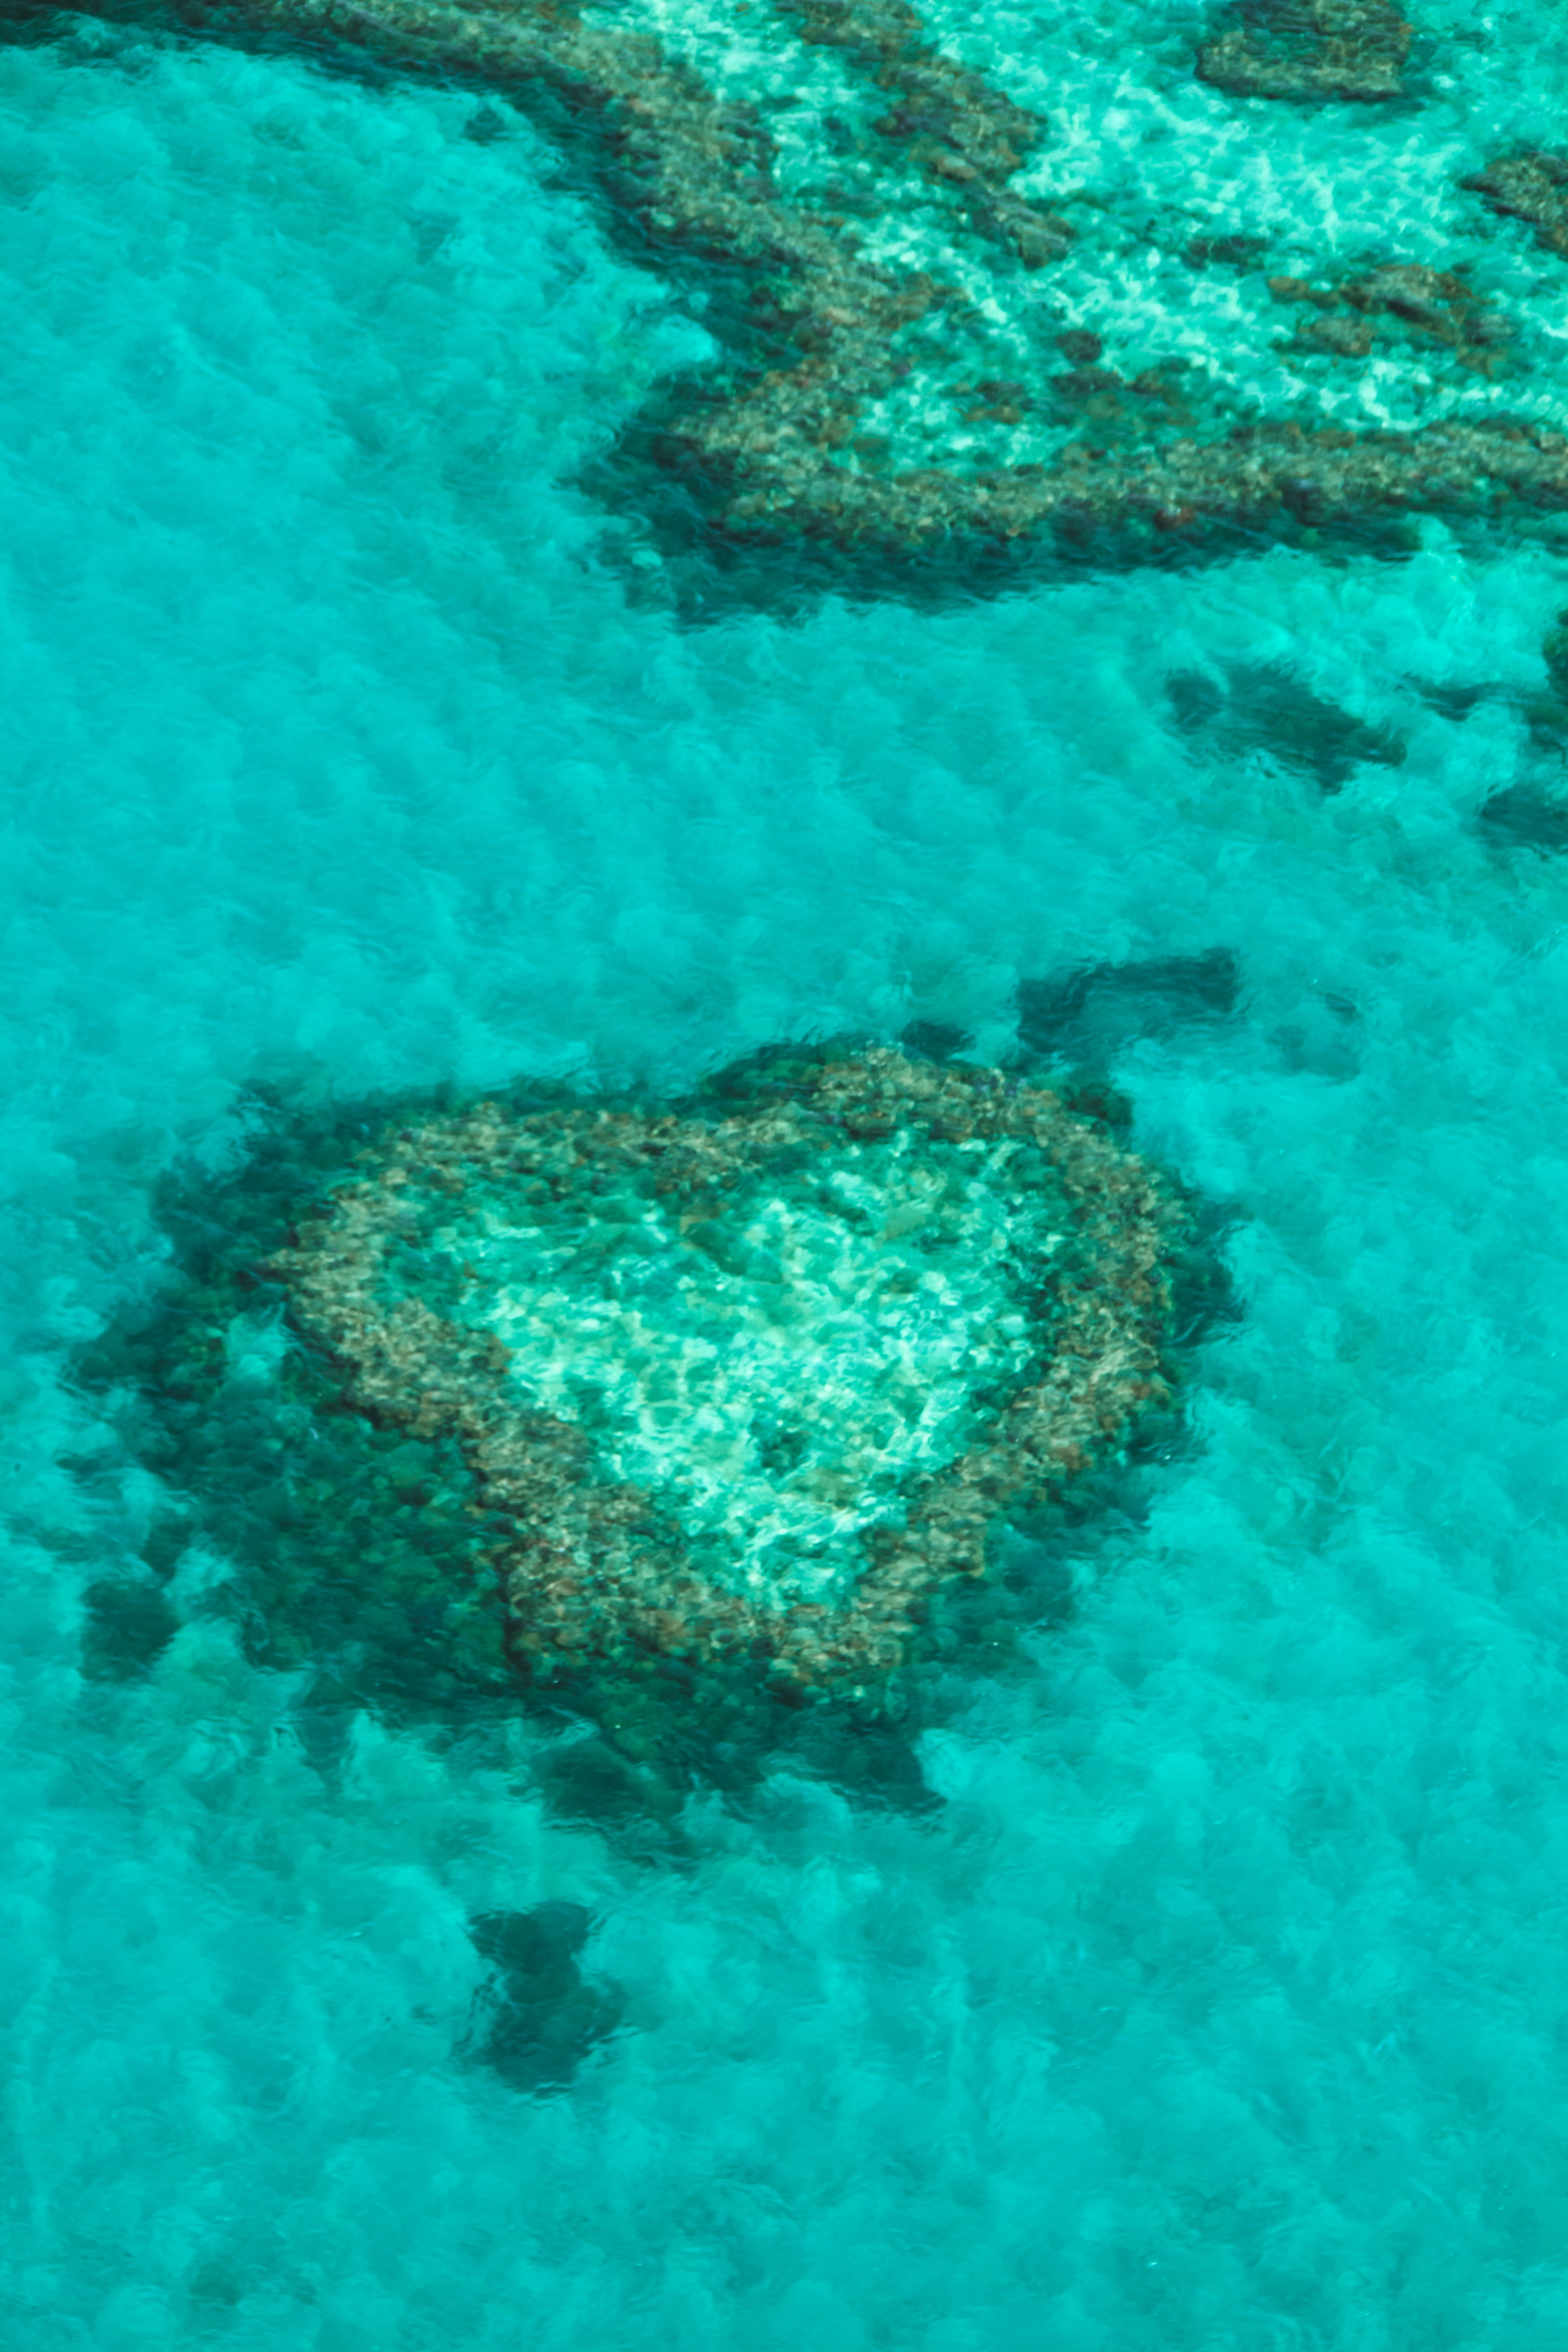 Heart Reef, one of Australia's most beloved yet fragile natural wonders